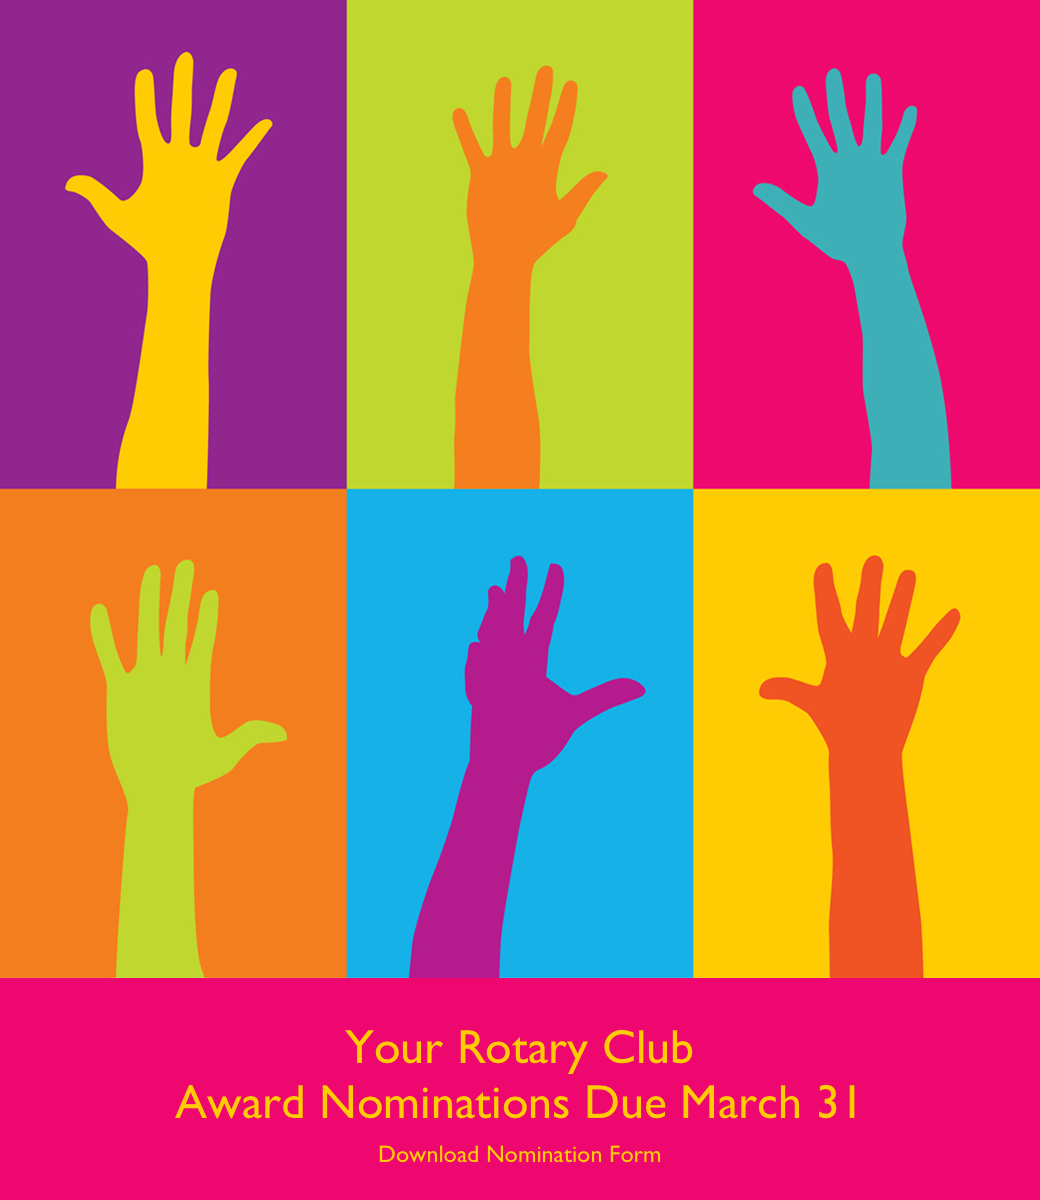 Club Award Nominations Due March 31 | Rotary Club of Mequon ...